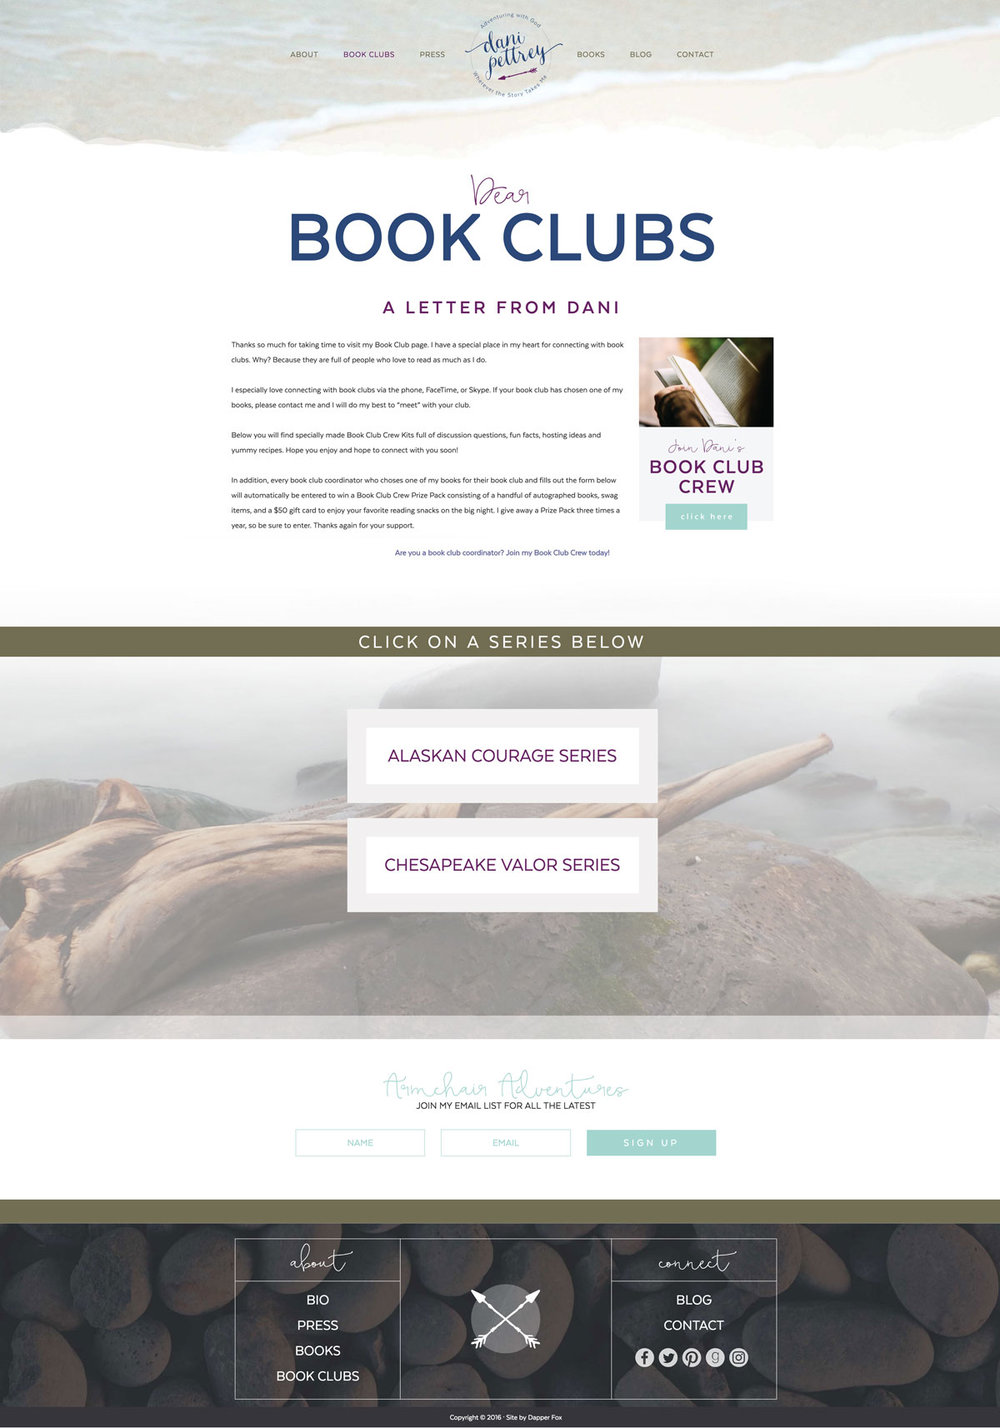 Dani Pettrey Book Author Wordpress Website and Branding Design #Coastal #Beach #Ocean #Design #Modern